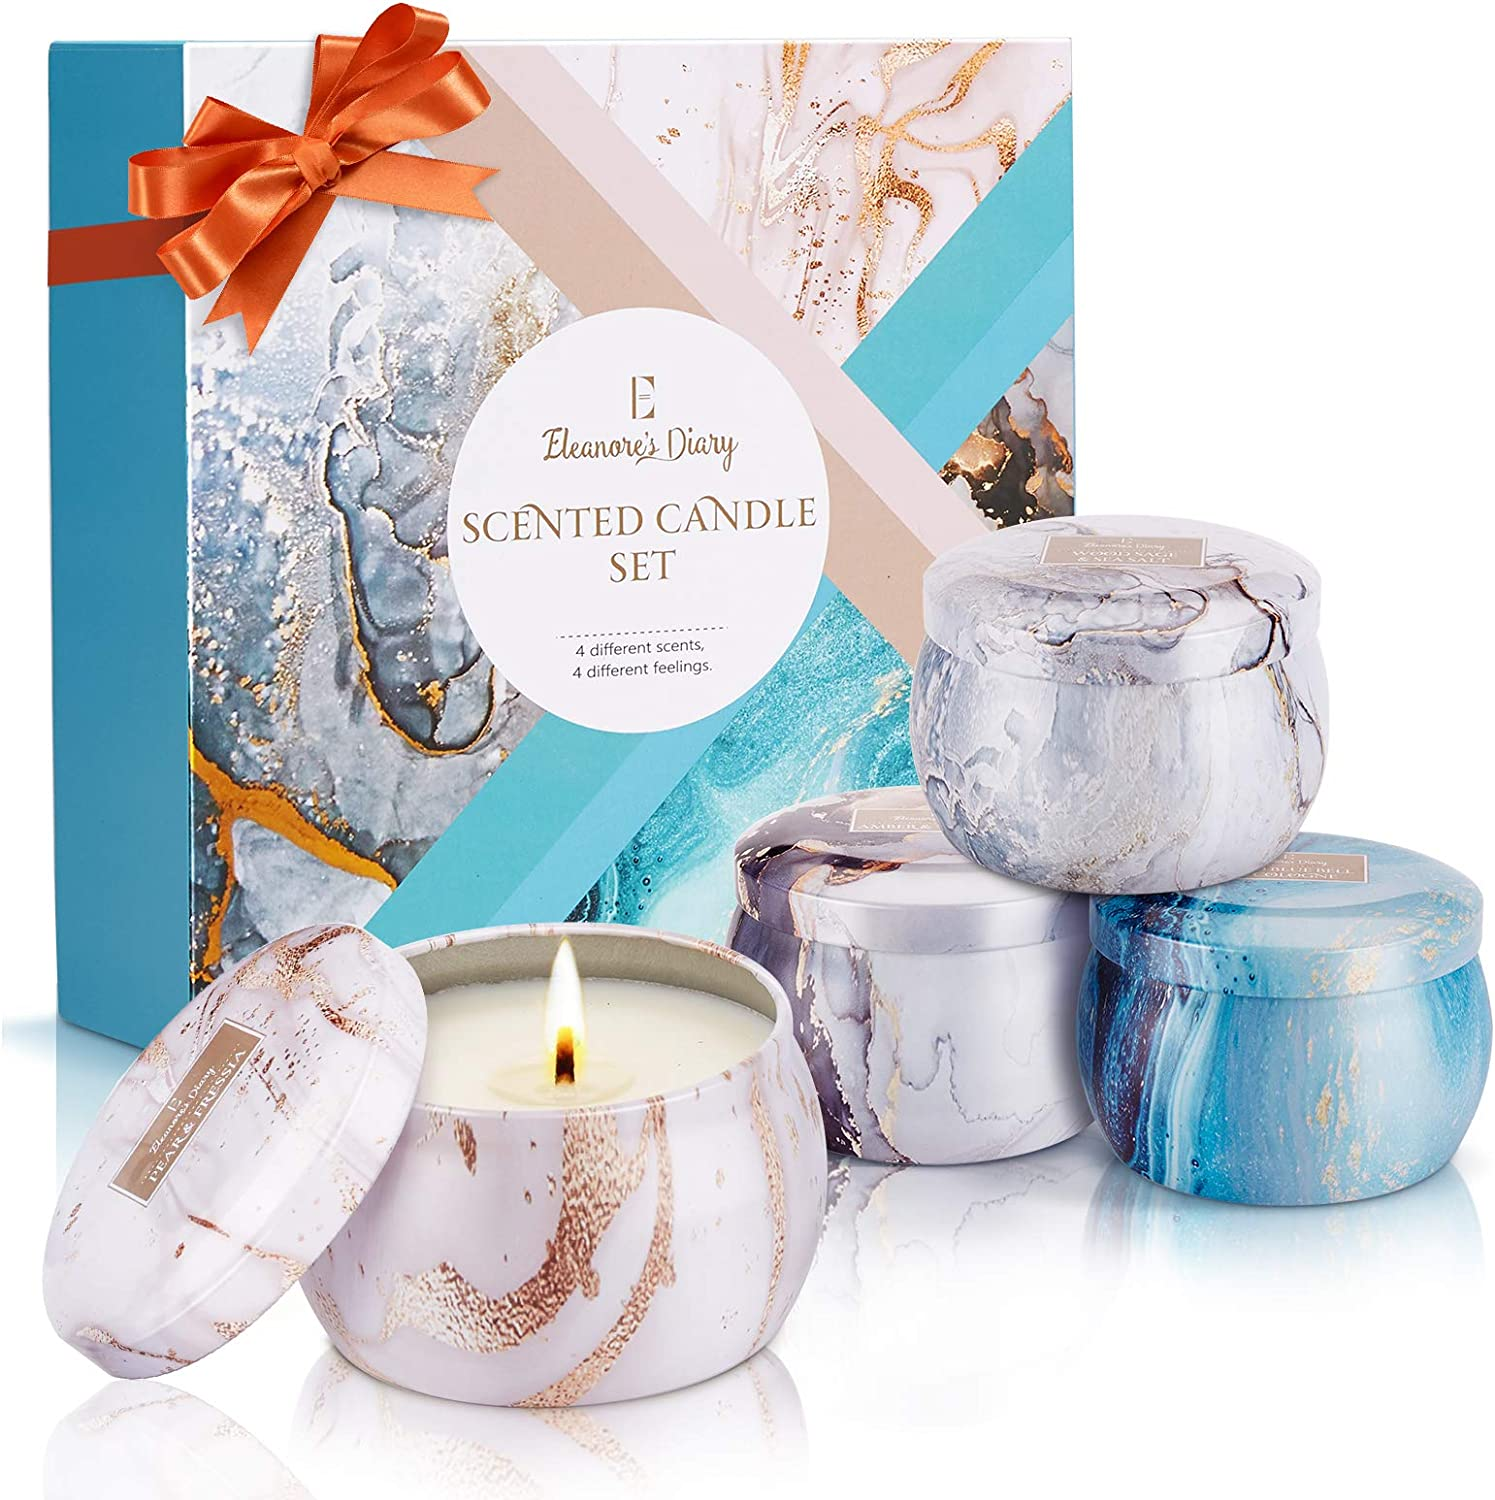 Eleanore's Diary Scented Candles Gift Sets for Women 4 pack WAS £13.99 NOW £8.39 w/code 2P5Y2DN9 @ Amazon